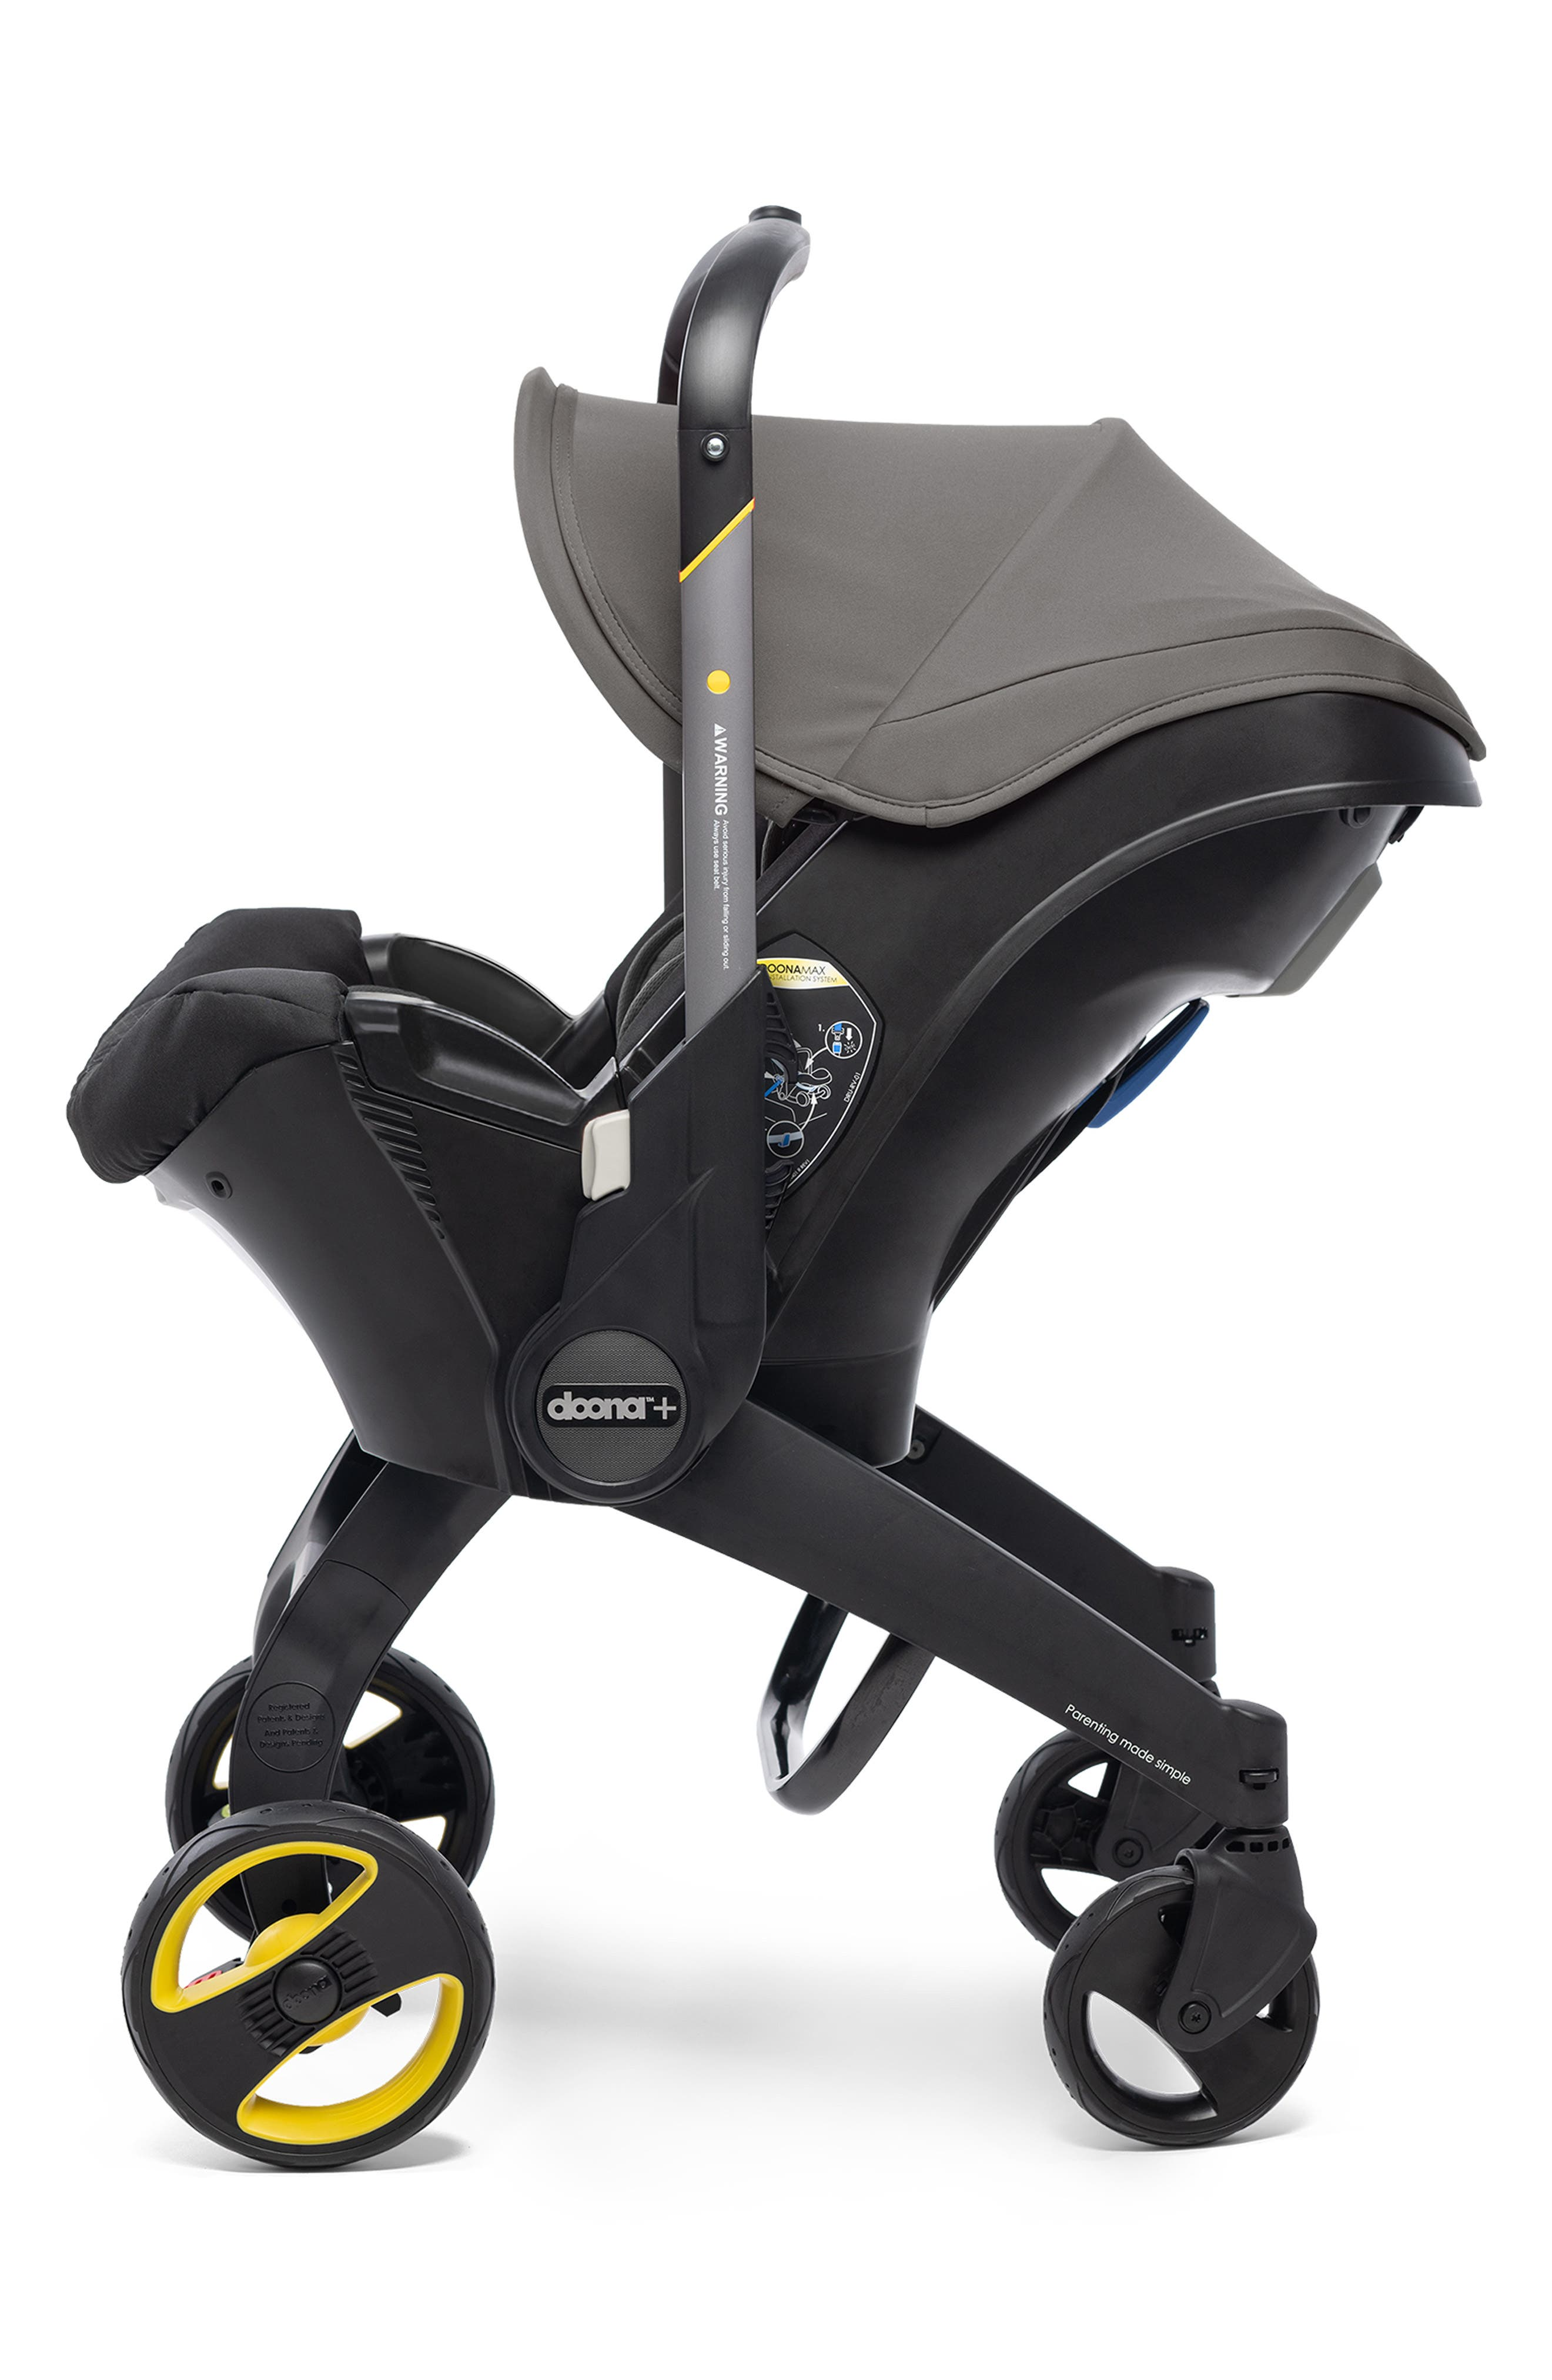 DOONA, Convertible Infant Car Seat/Compact Stroller System with Base, Alternate thumbnail 6, color, GREY HOUND